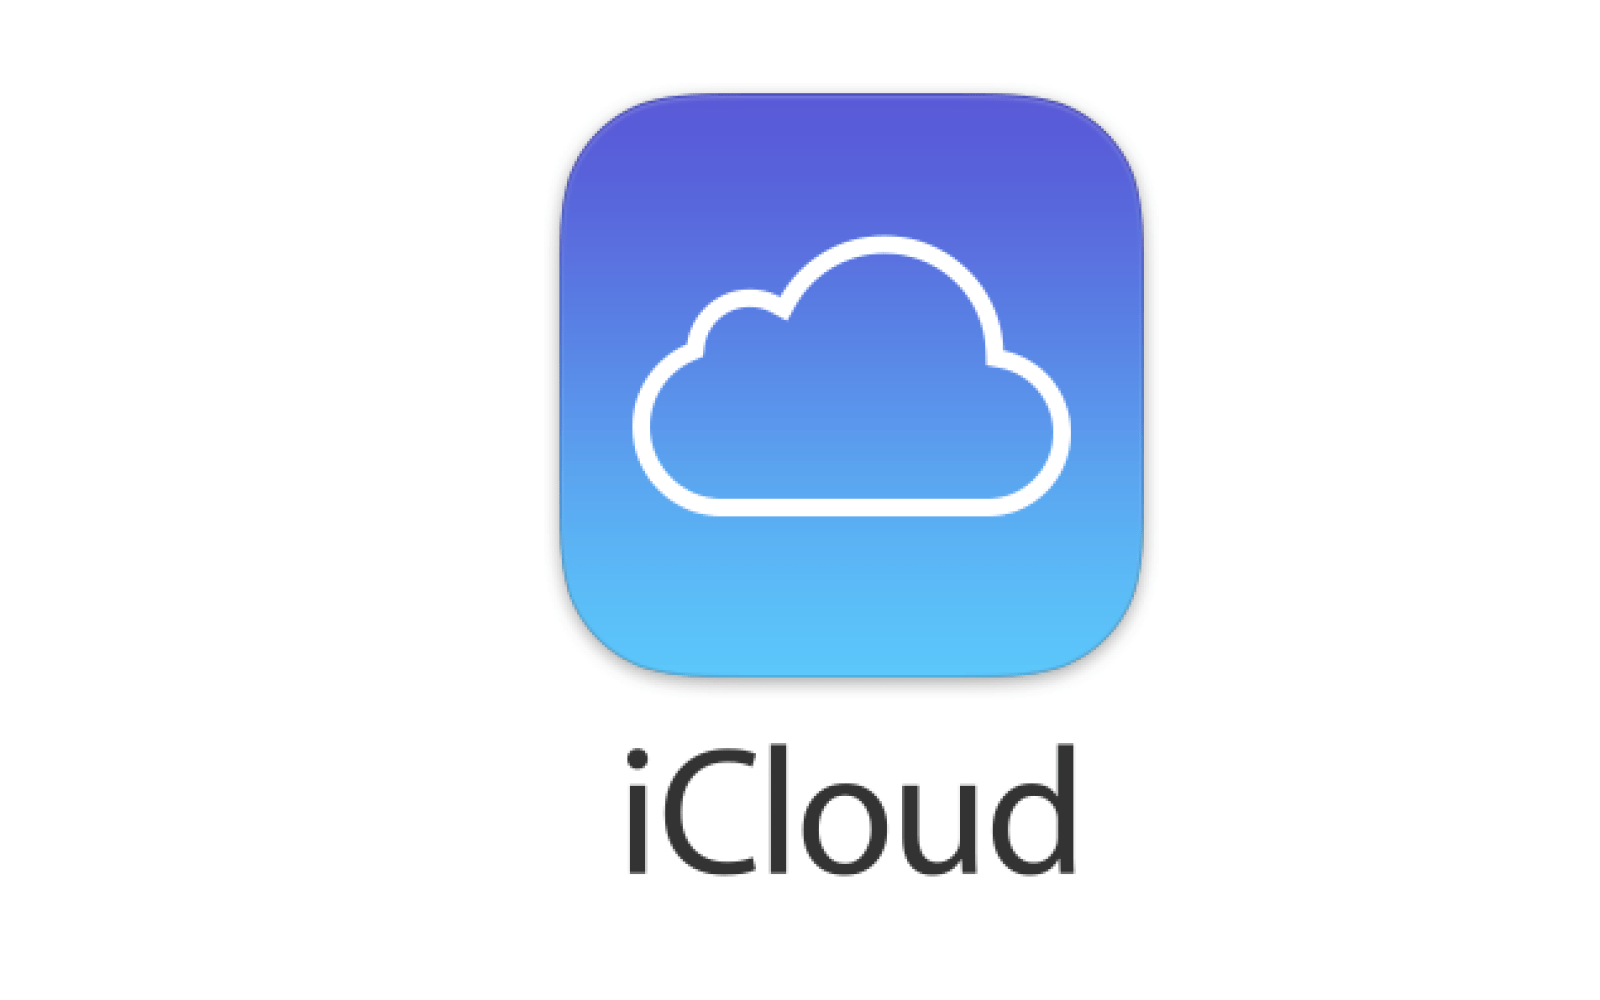 How To Safely Delete Or Change An Icloud Account From Your Mac Or